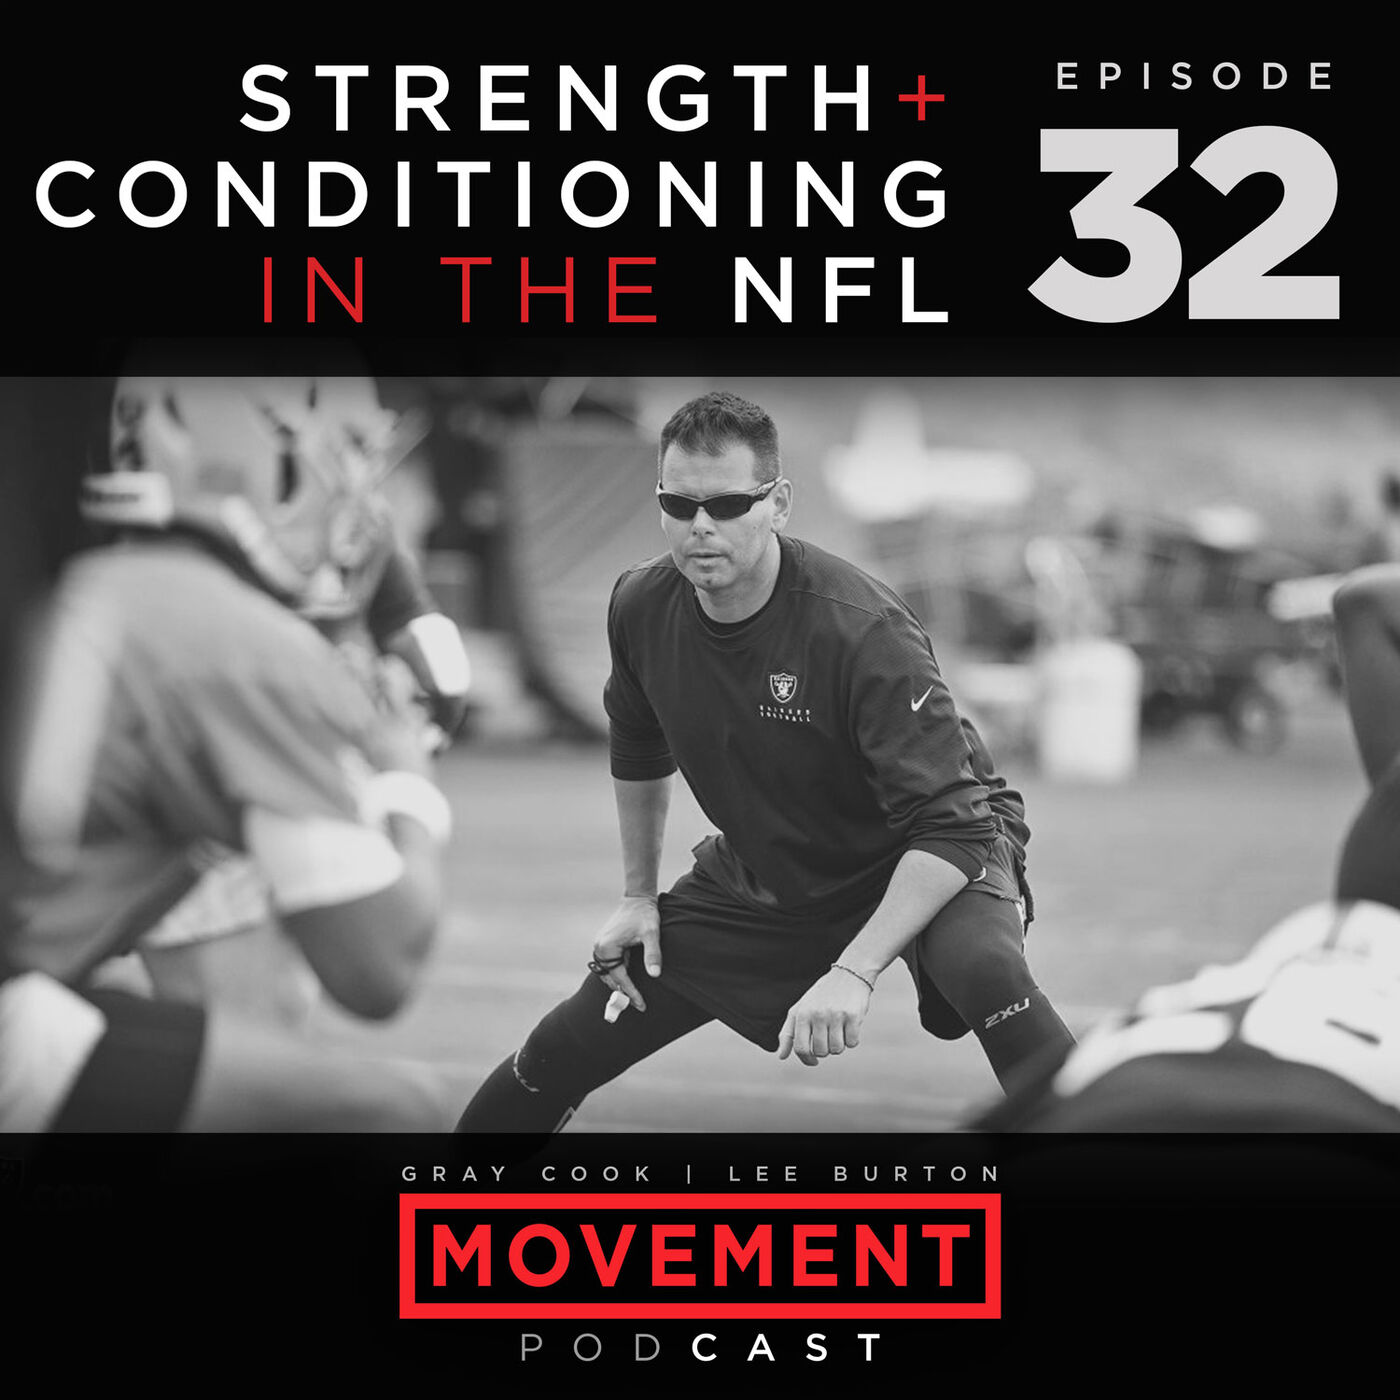 Strength & Conditioning in the NFL